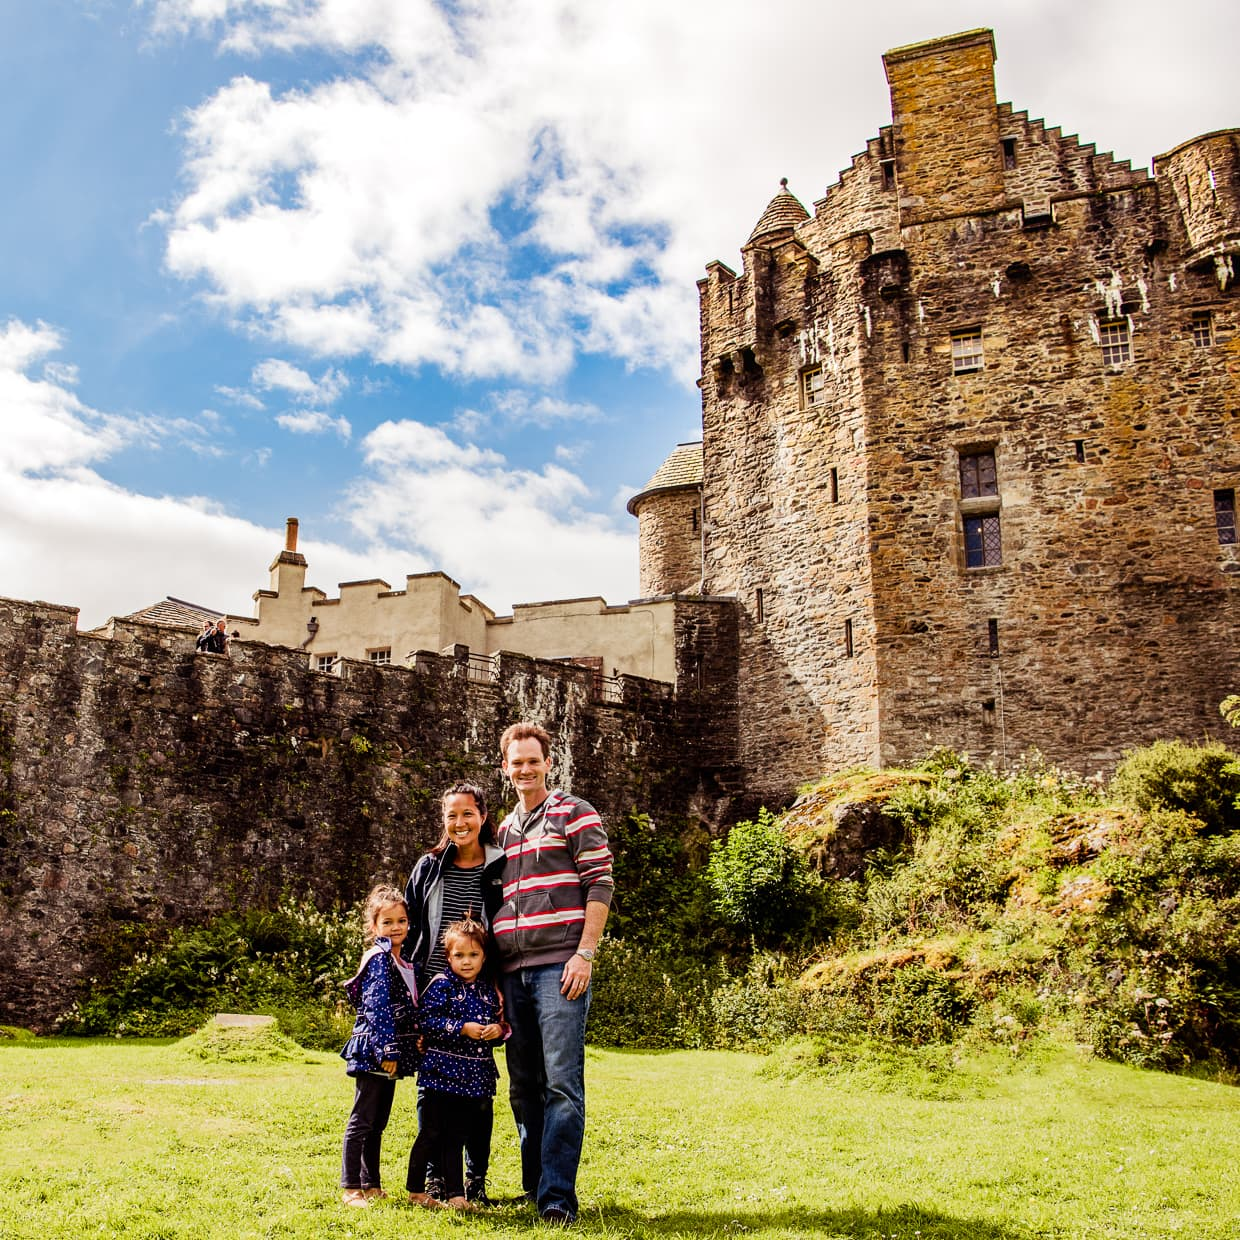 A family outing to Eilean Donan Castle near the Isle of Skye.